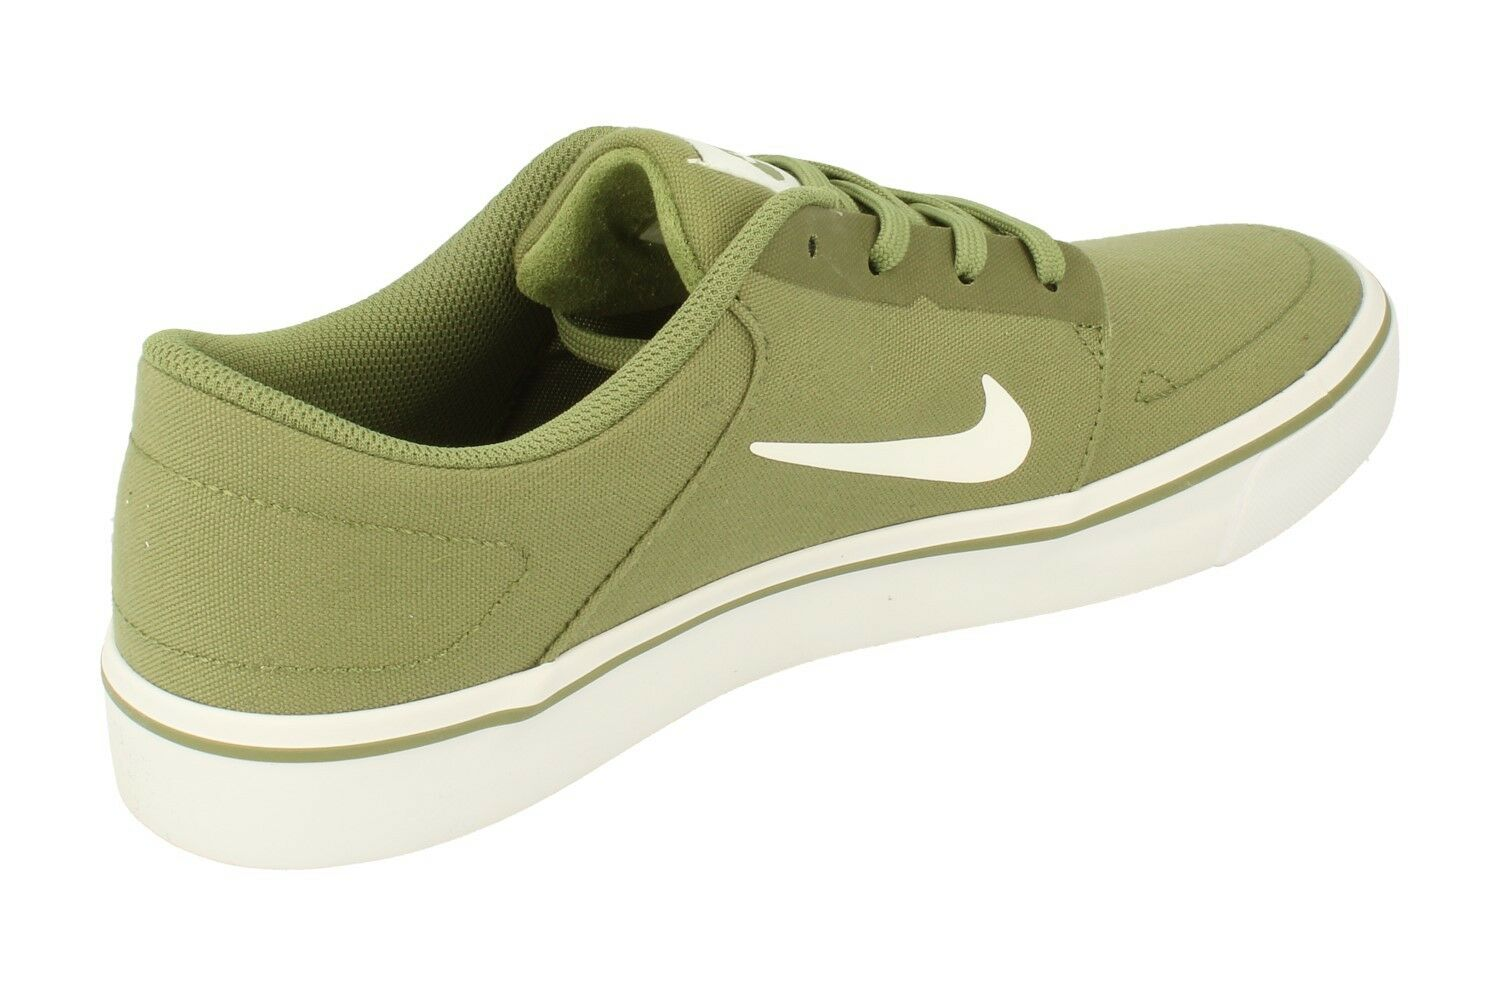 Nike Sb Portmore Trainers Canvas Hommes Trainers Portmore 723874 Baskets Chaussures 311 ddd774